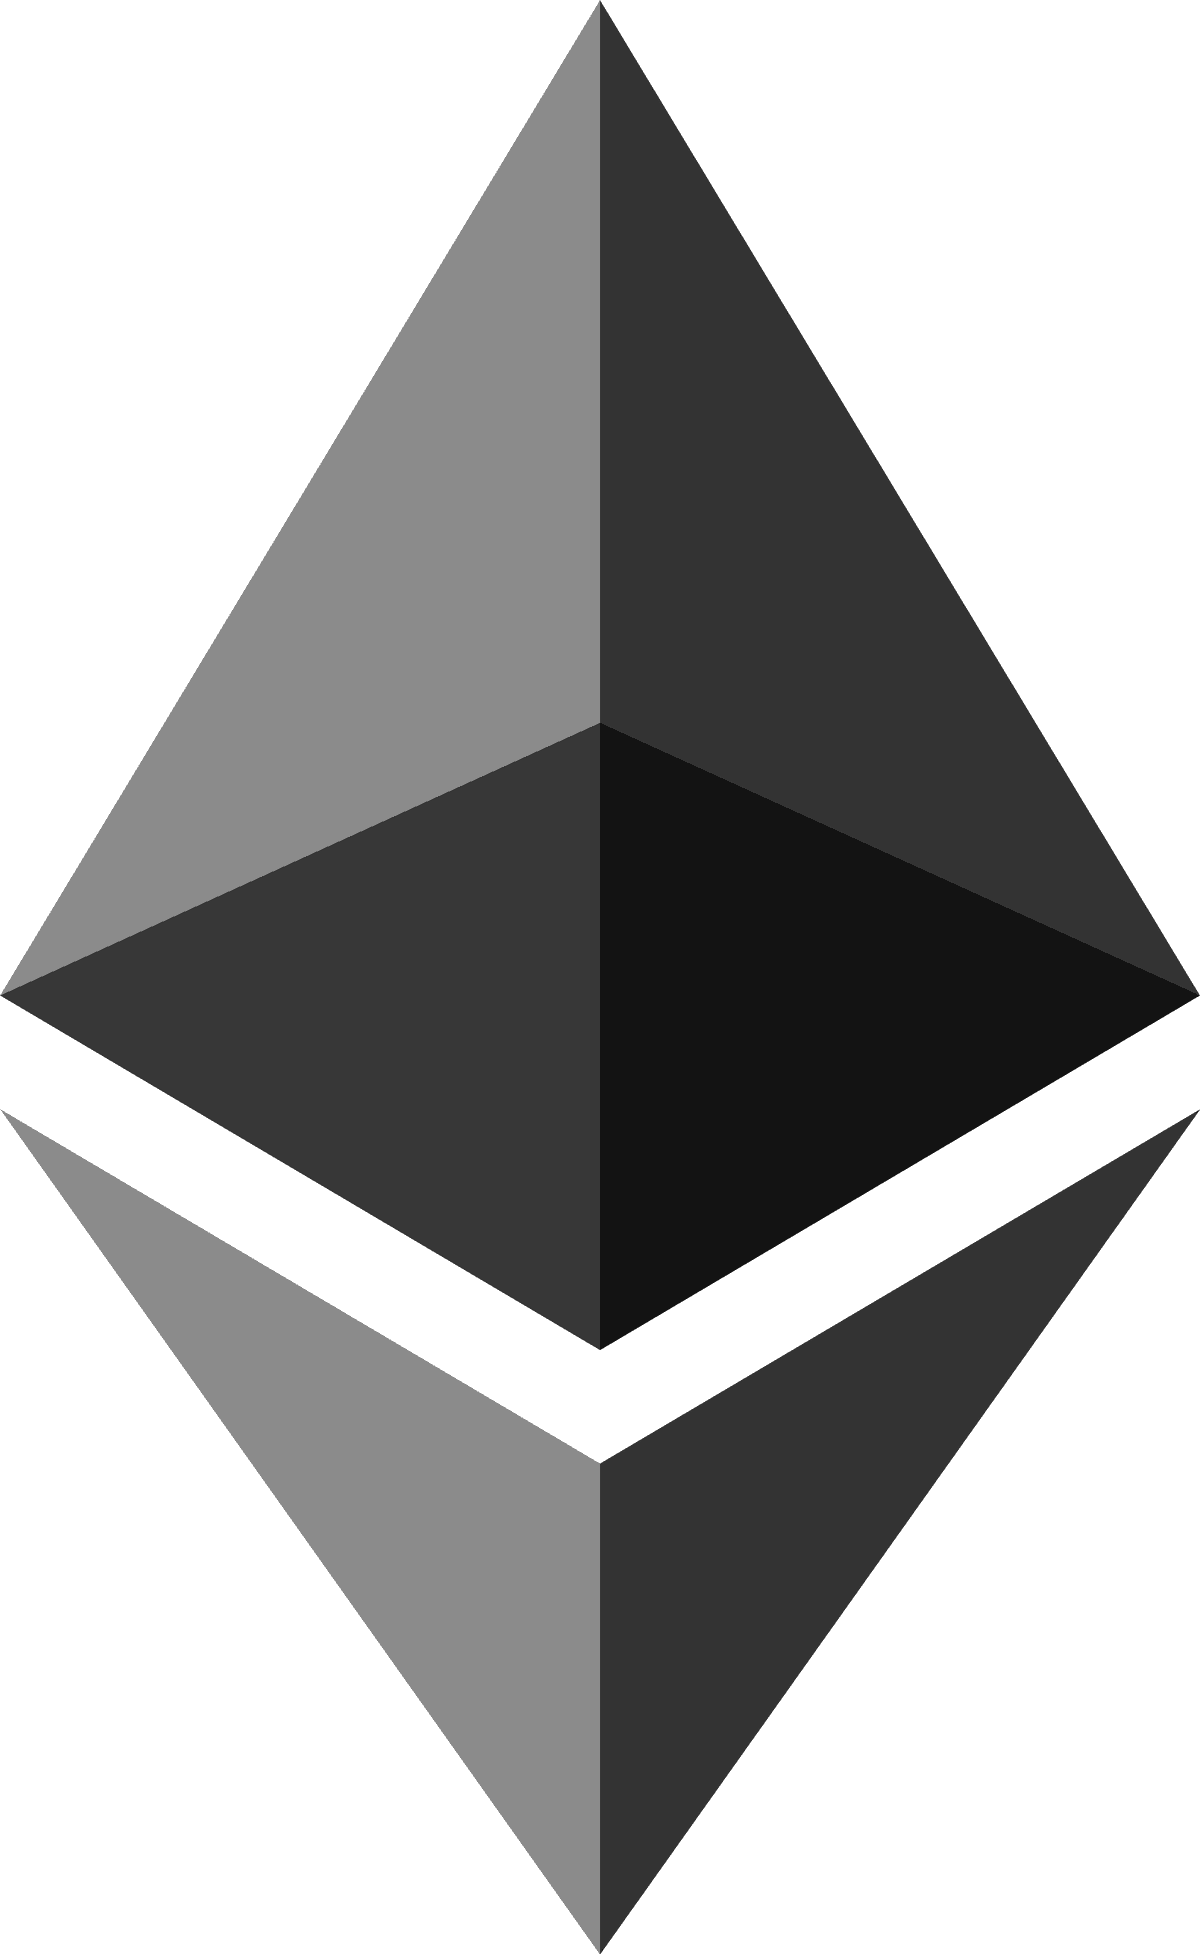 Ethereum icon black